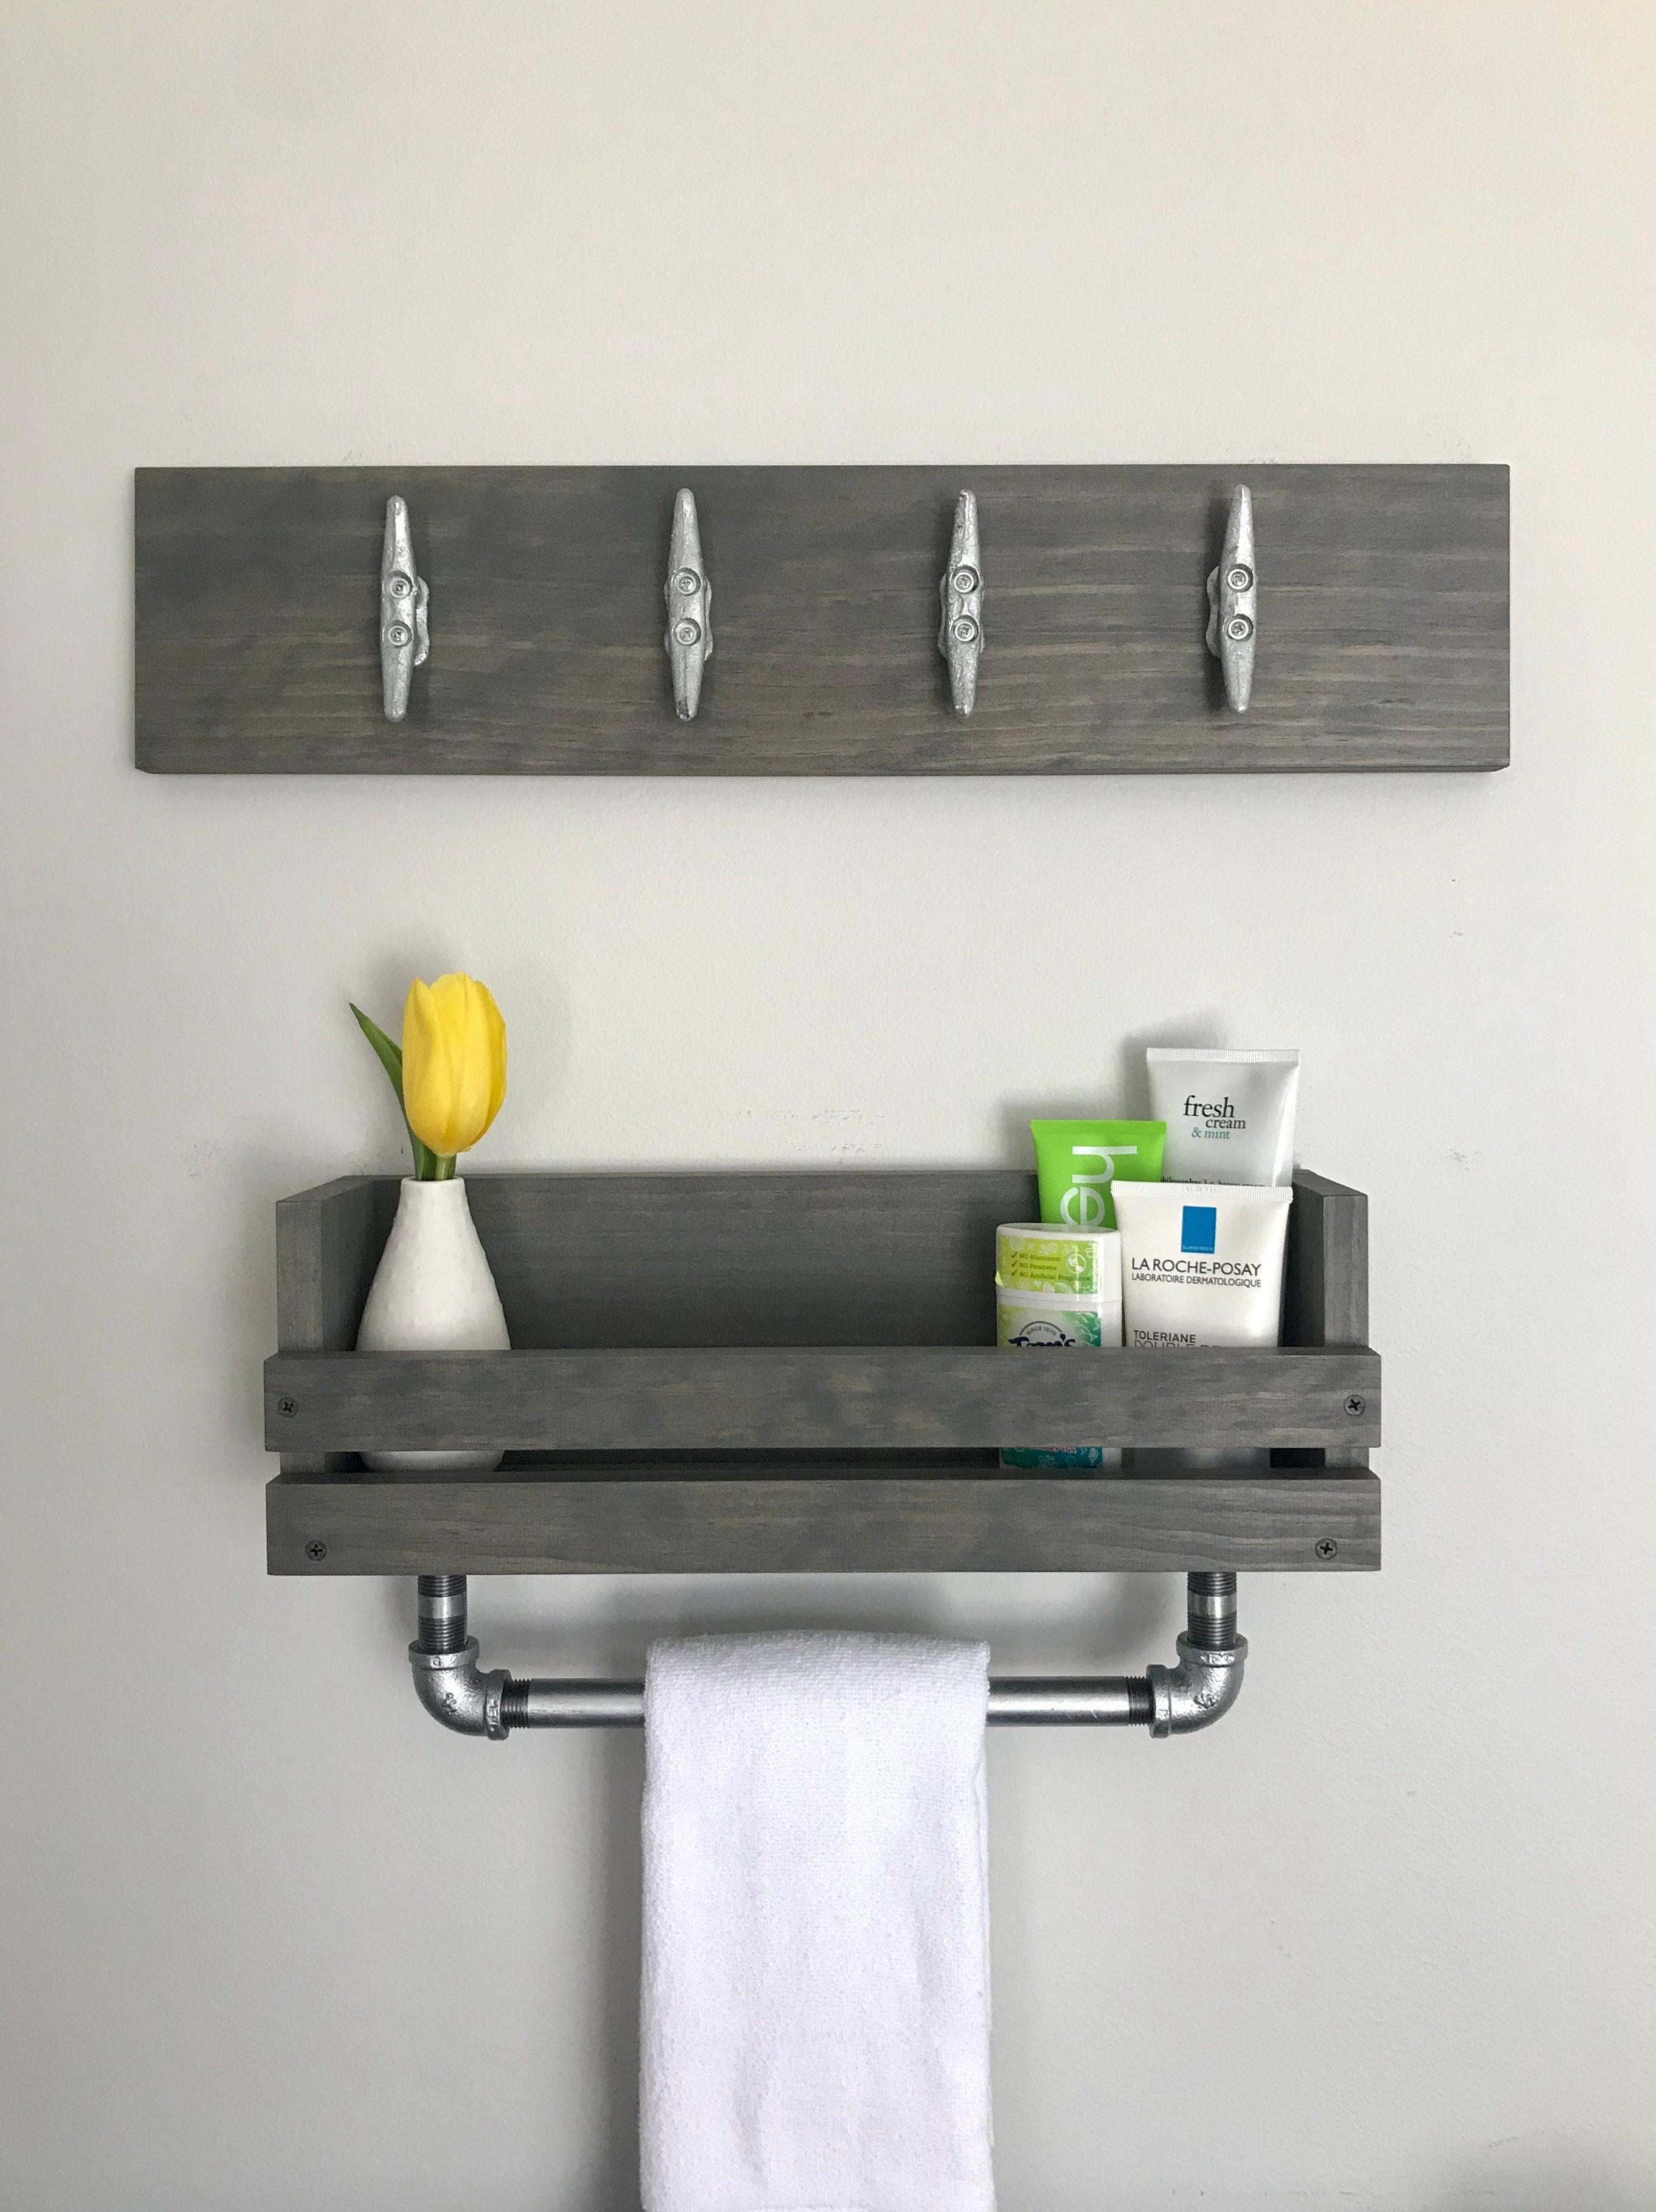 Bathroom Set Galvanized Gray Towel Bar Shelf Coastal Modern Etsy Towel Rack Nautical Bathrooms Bathroom Storage Shelves